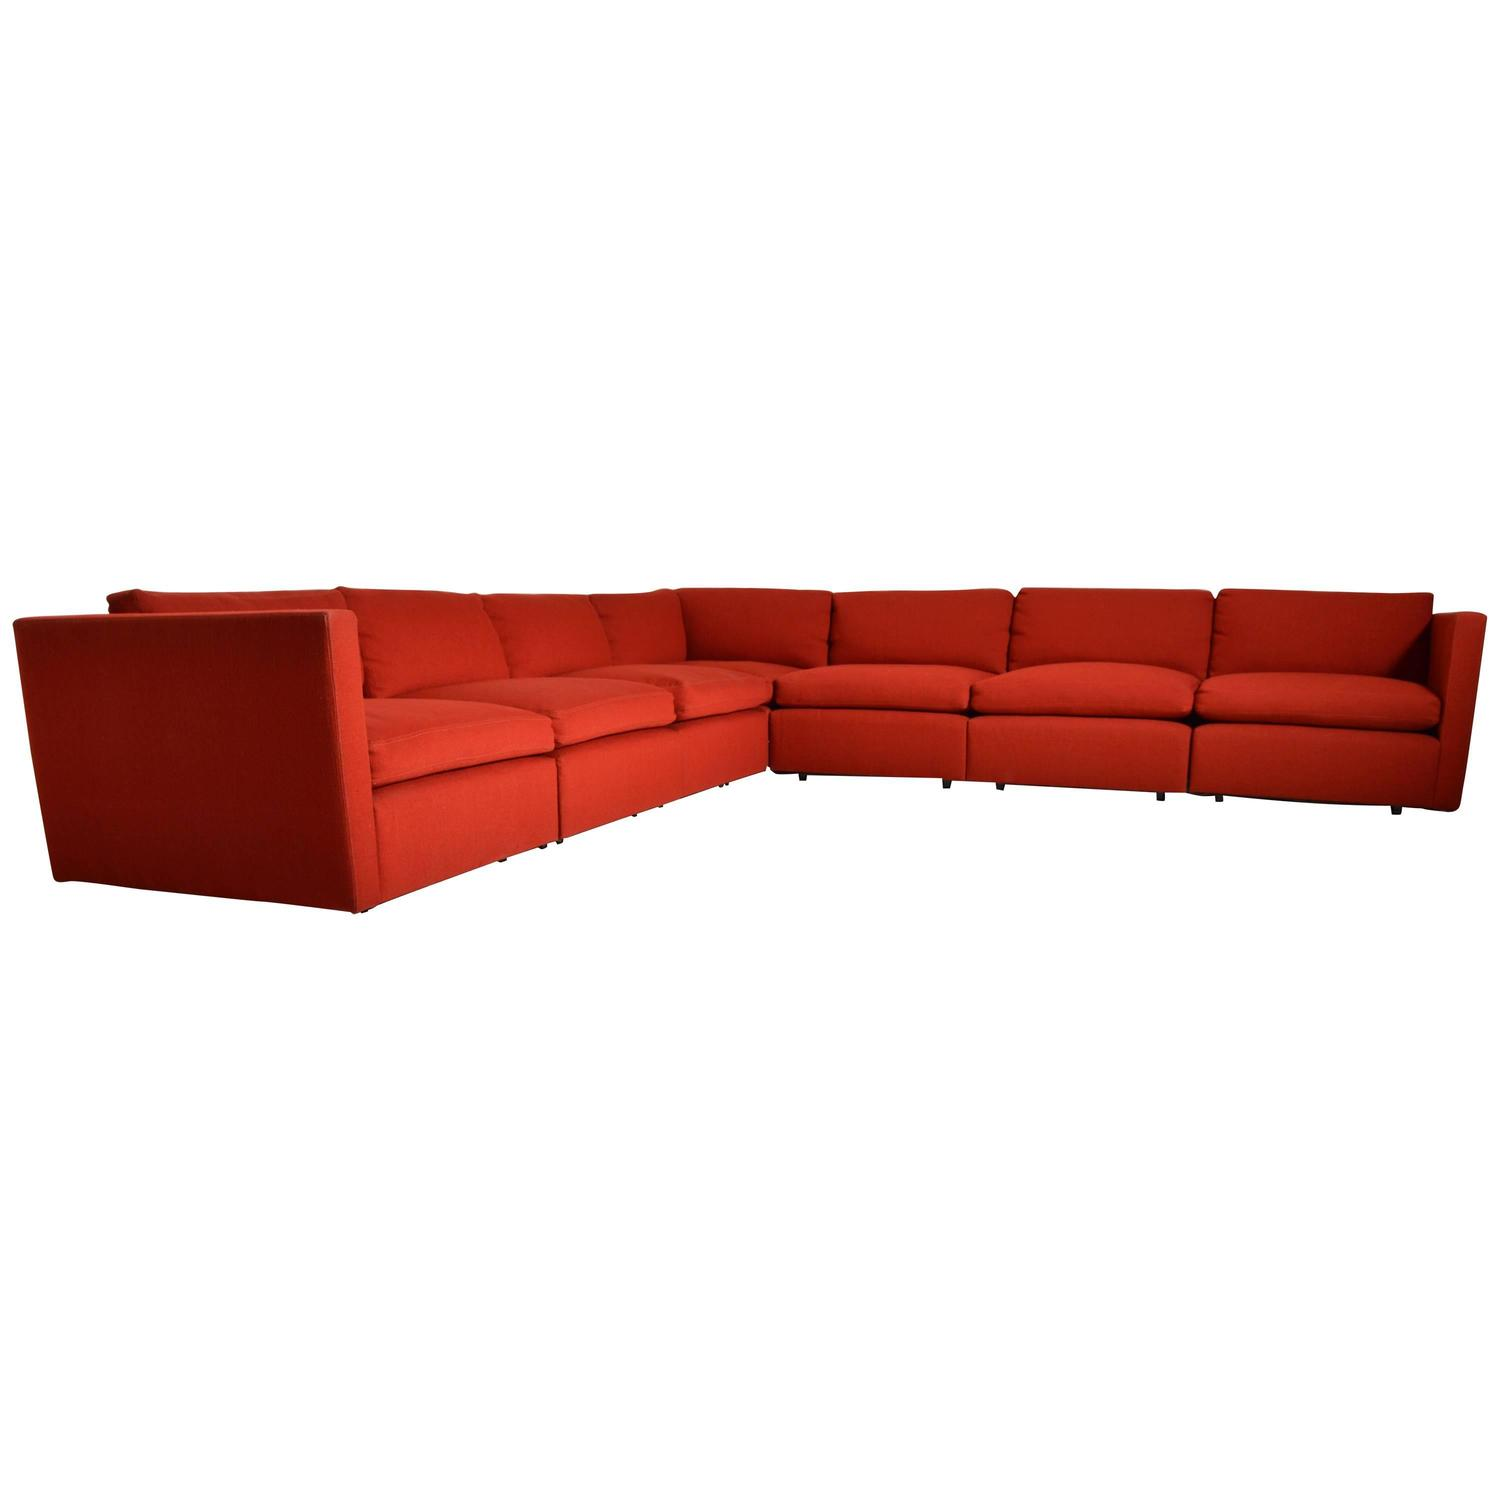 Modular Sectional Sofa Home & Interior Design